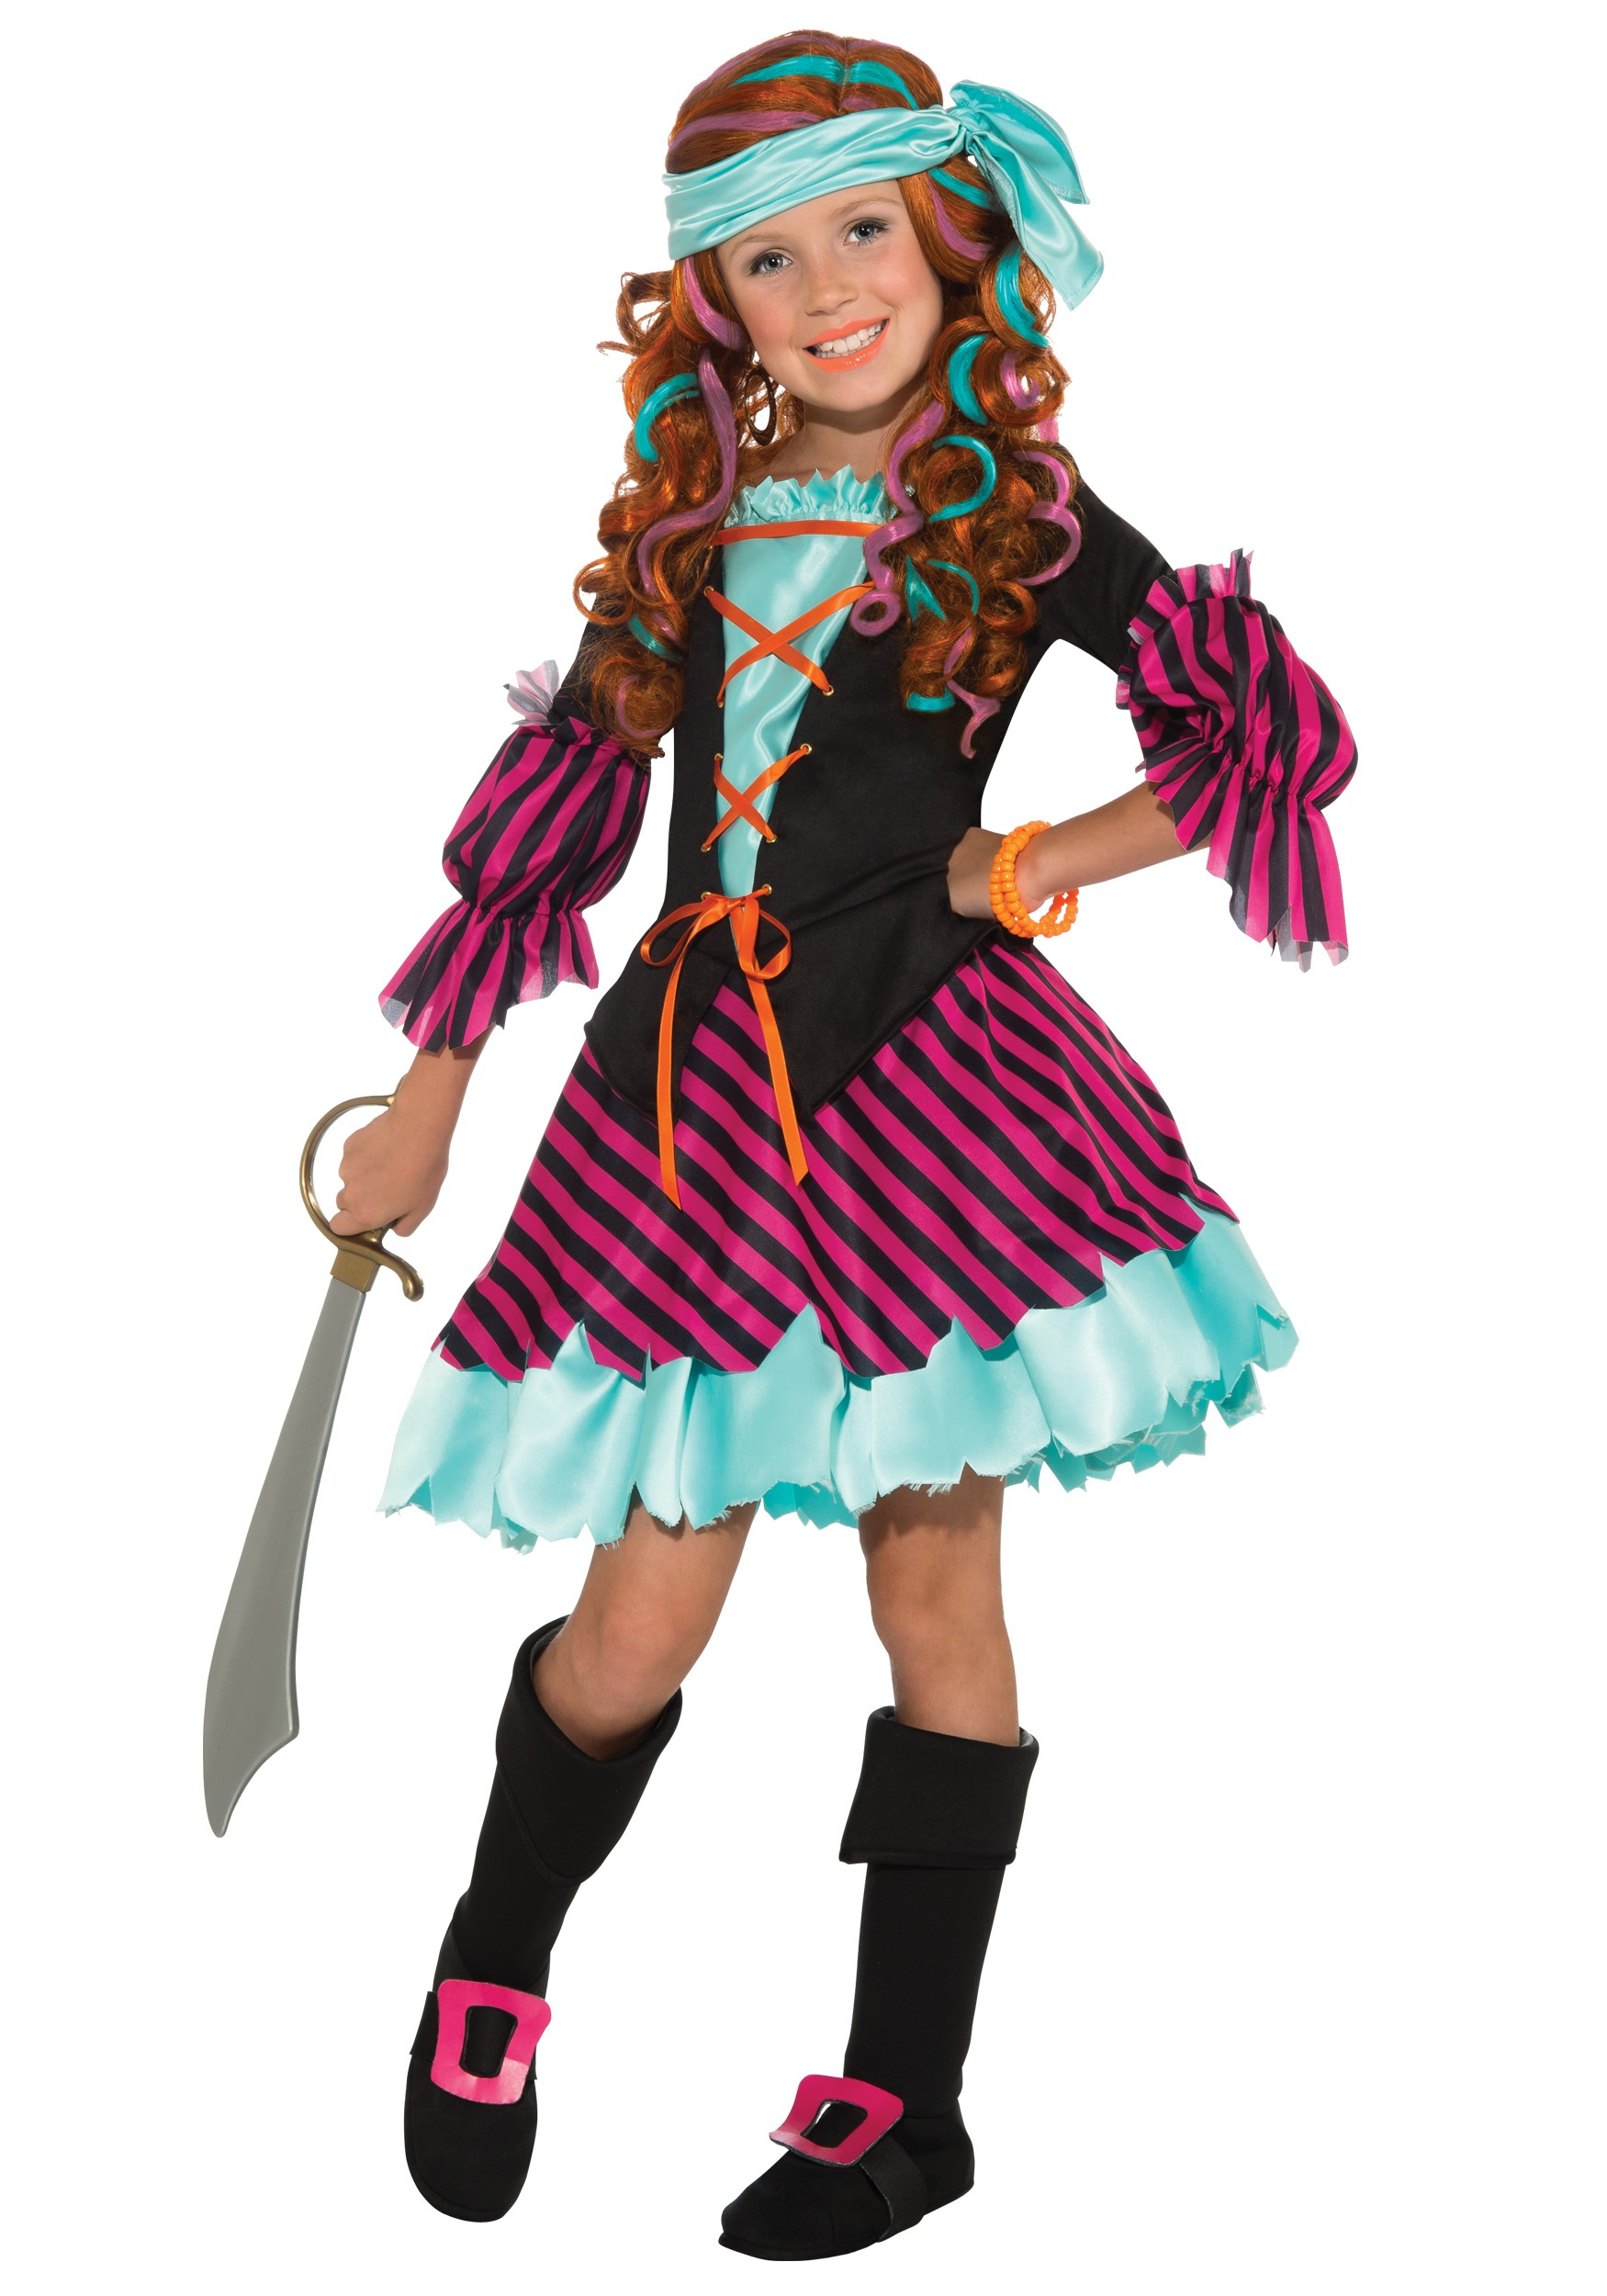 Salty Taffy Girls Pirate Costume  sc 1 st  Halloween Costumes & Salty Taffy Girls Pirate Costume - Halloween Costumes